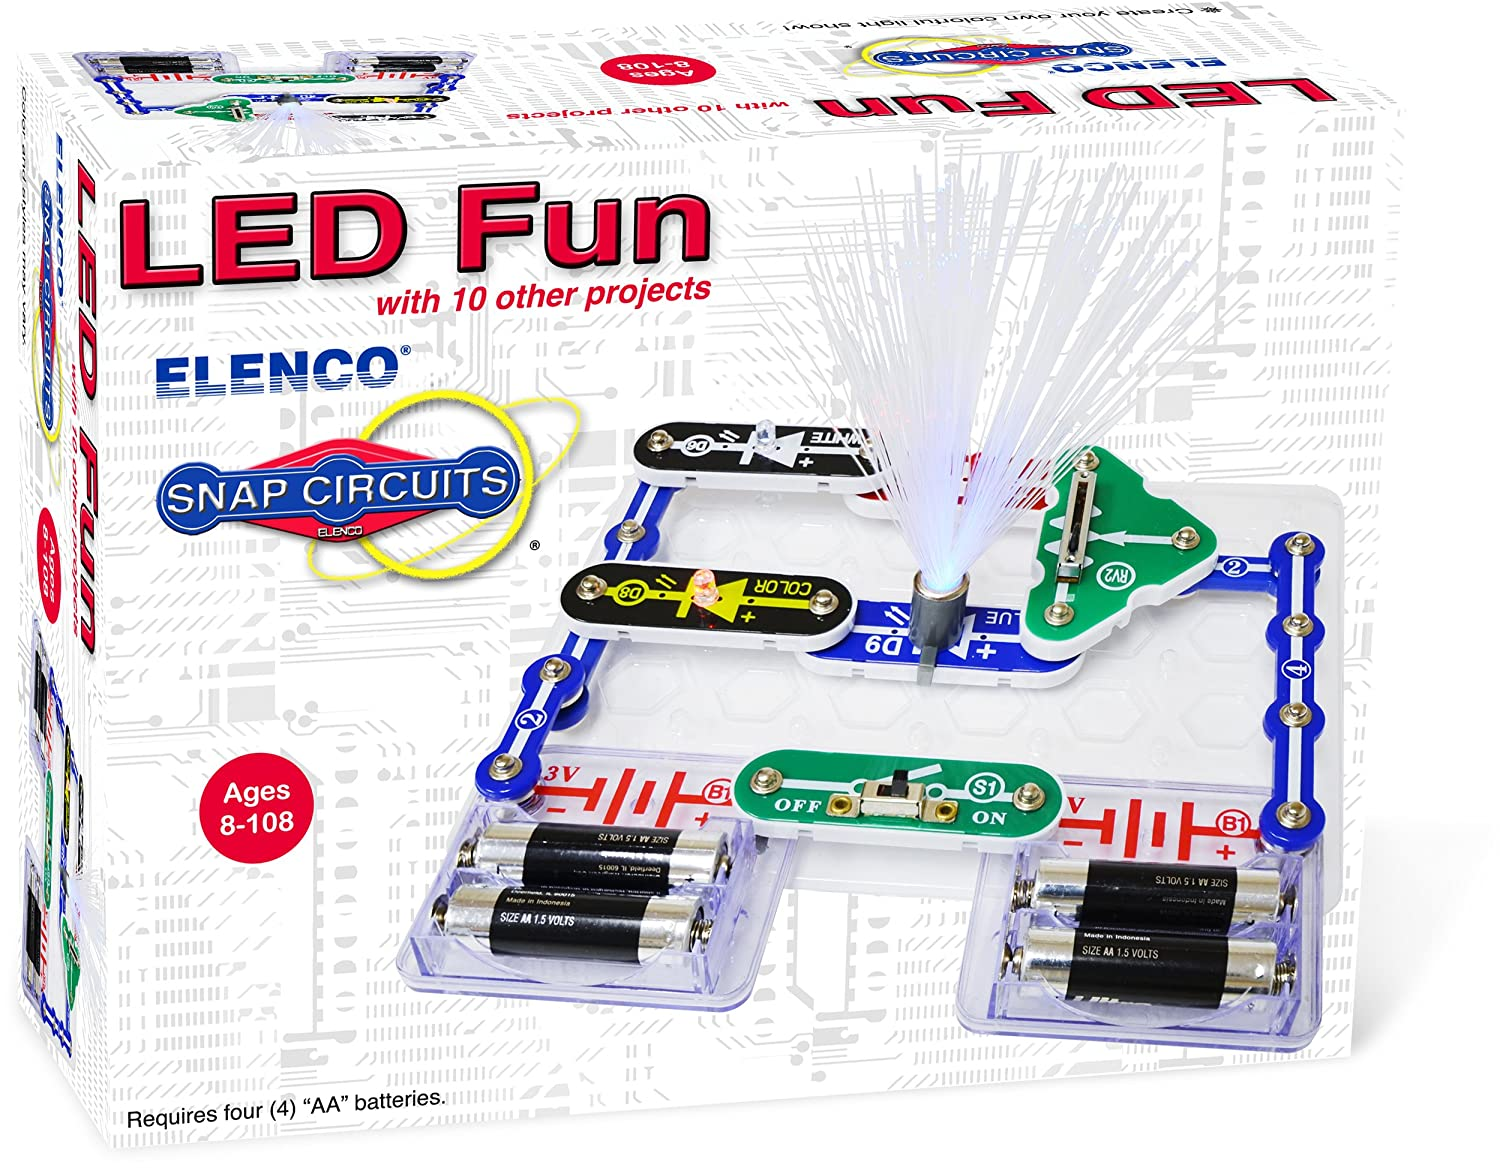 Elenco Electronics Scp 11 Snap Circuits Led Fun Science Bike Light Circuit Project Kit Toys Games